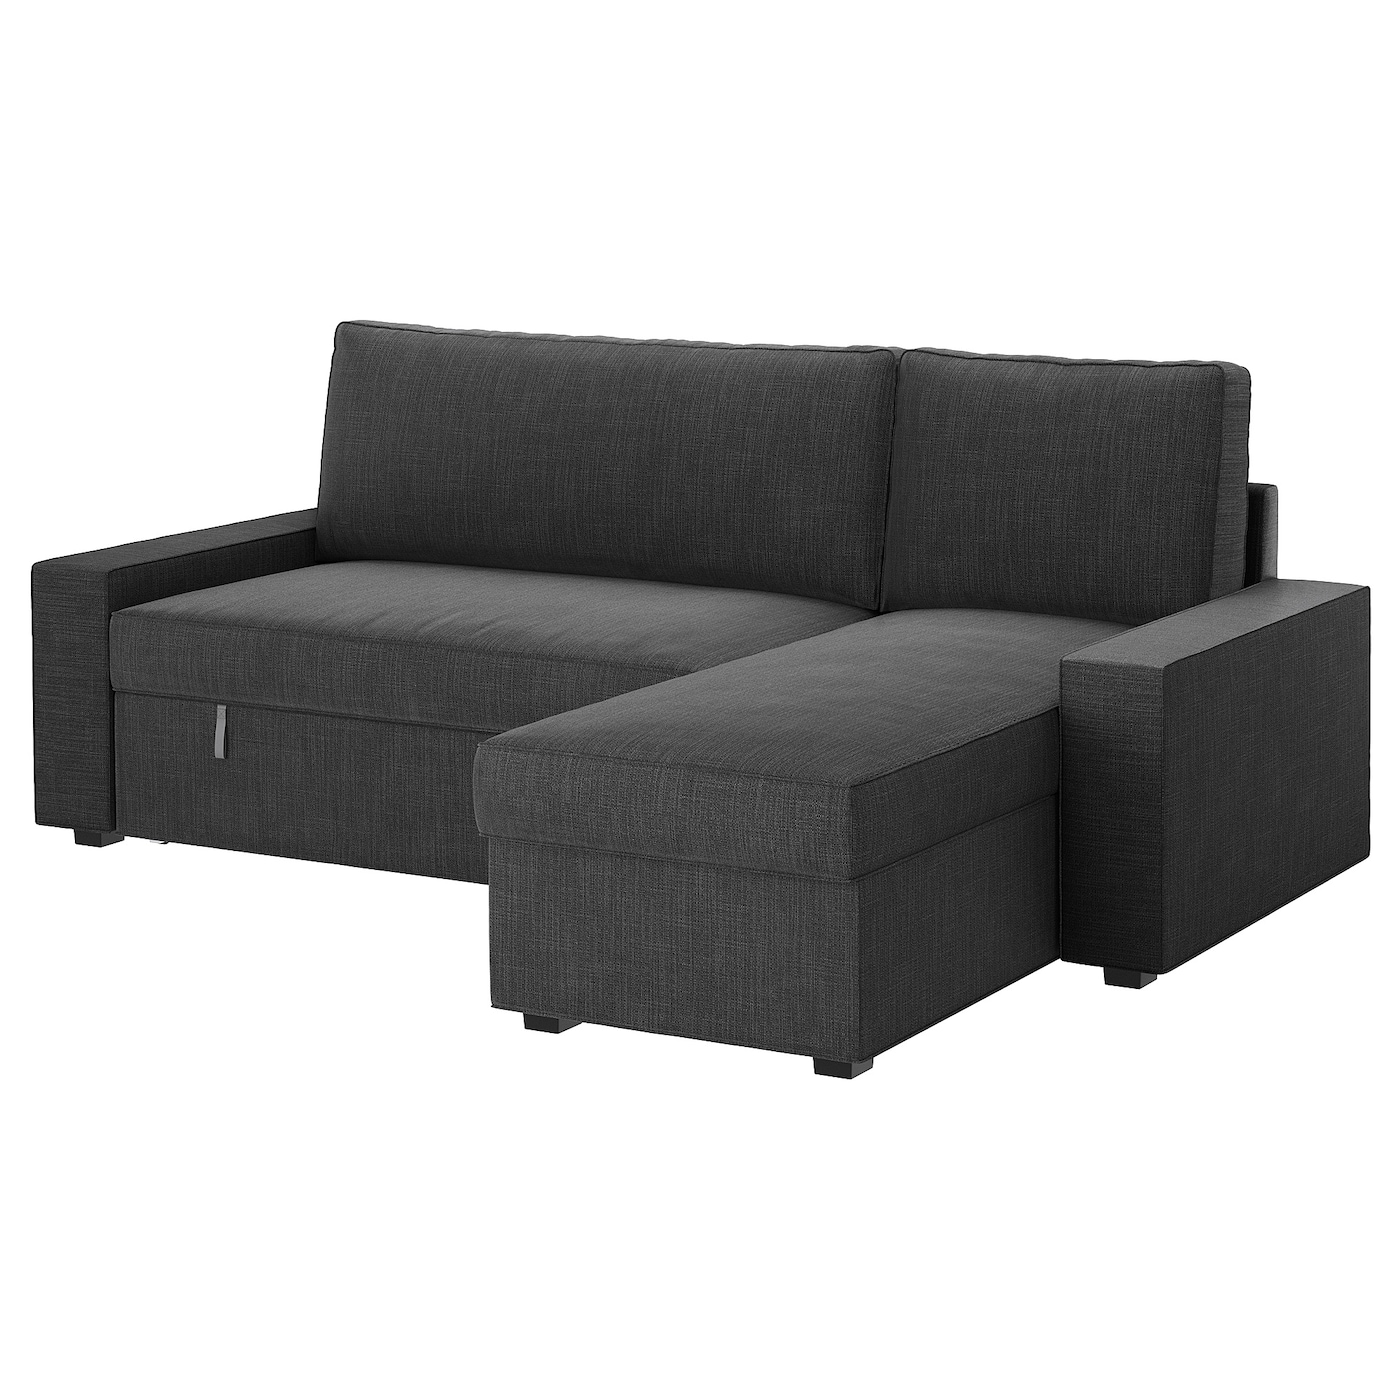 Vilasund sofa bed with chaise longue hillared anthracite ikea - Chaise gris anthracite ...